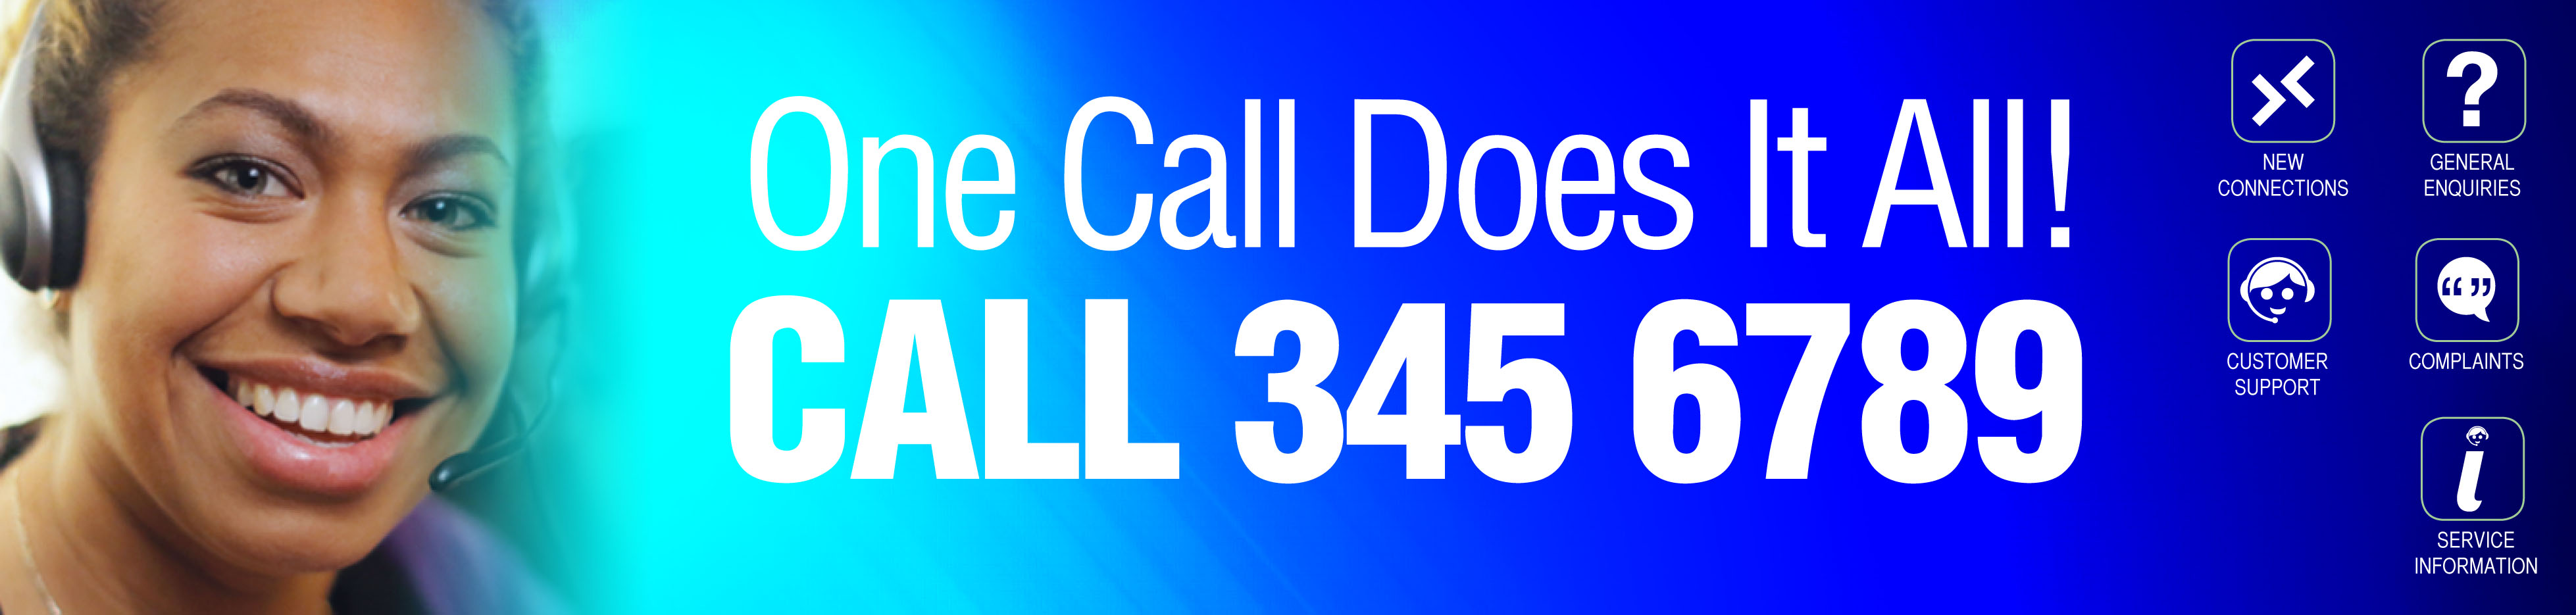 CALL CENTER WEB BANNER